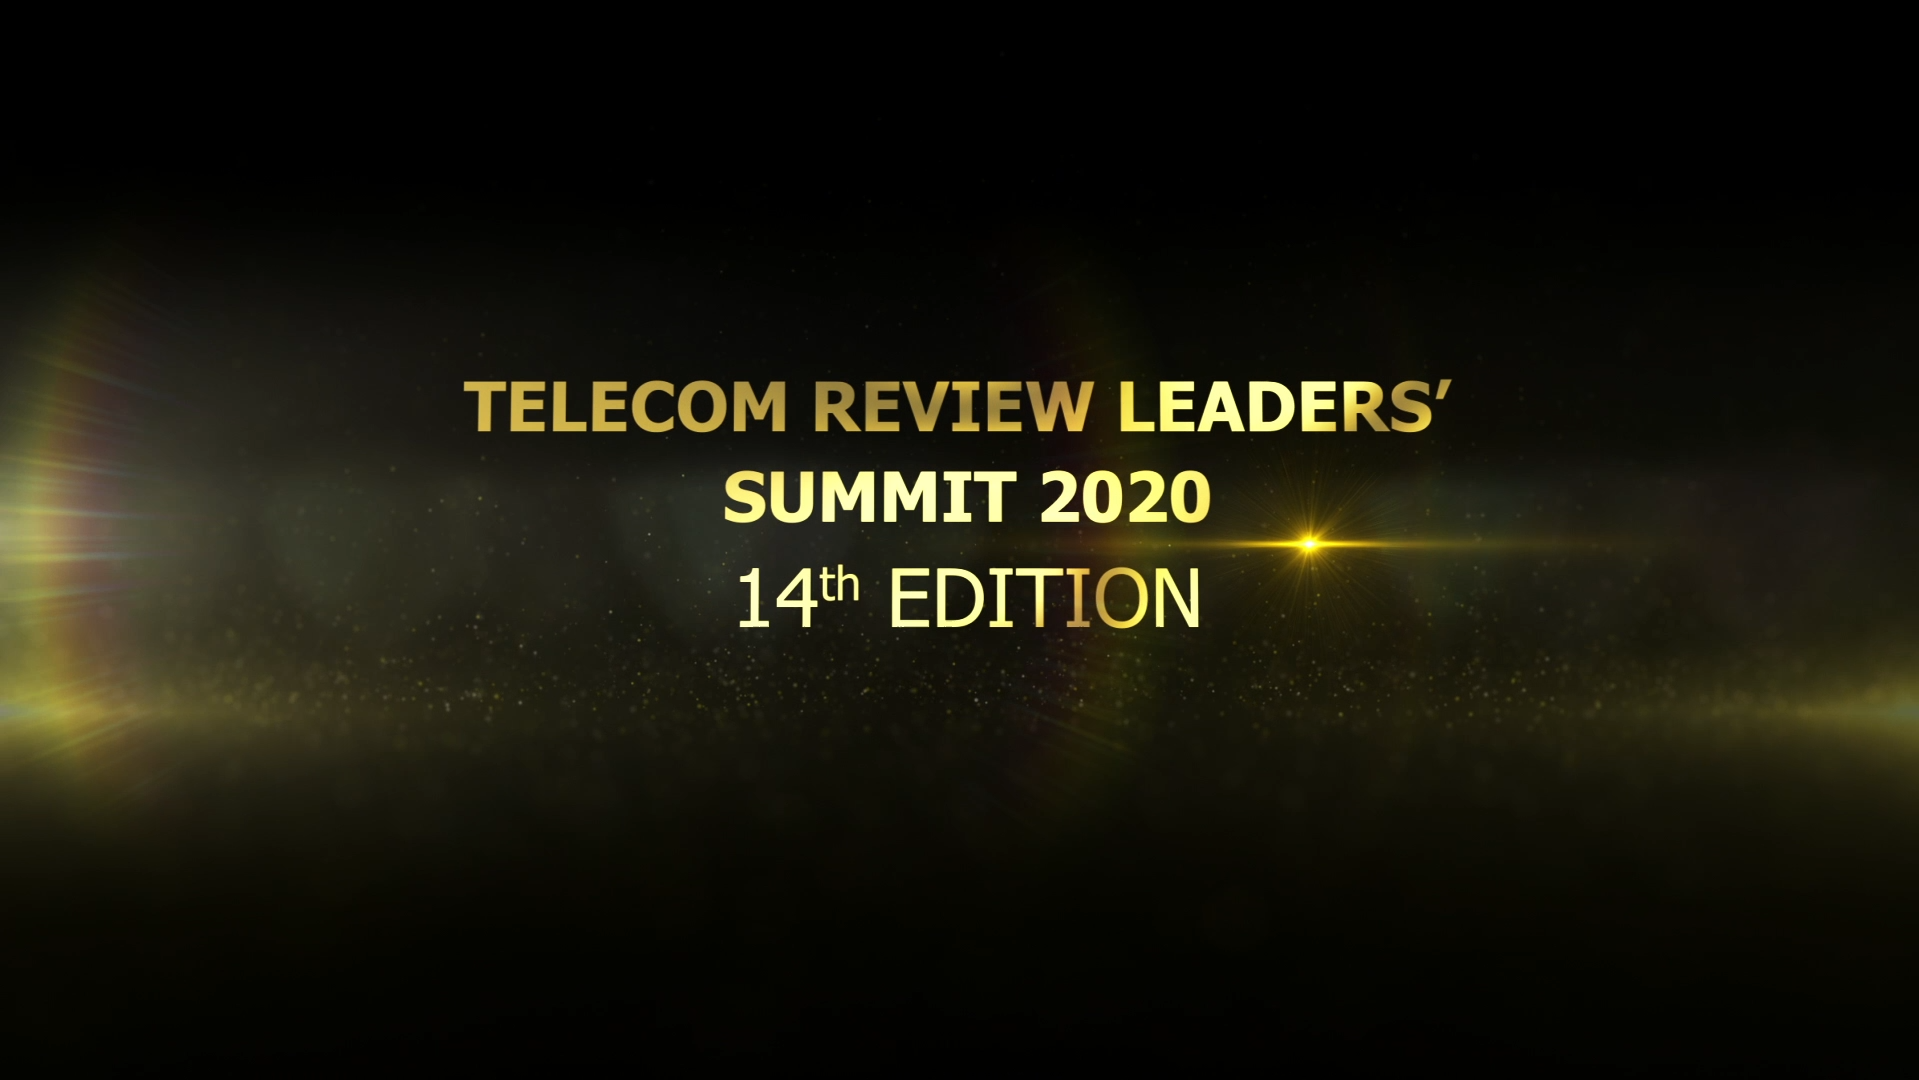 Join the 14th Telecom Review Leaders' Summit 2020